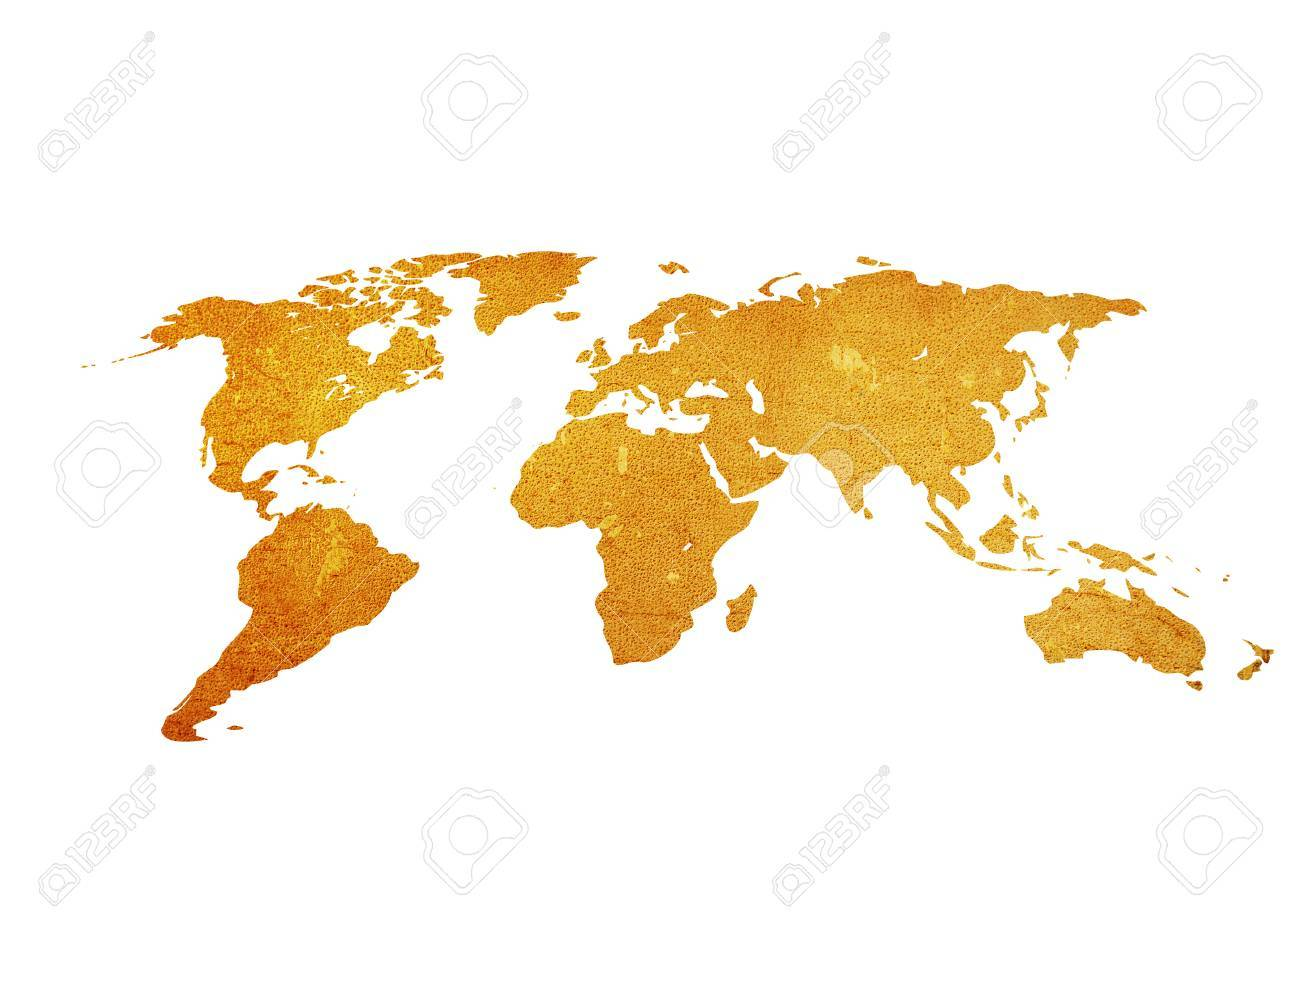 World Map Textures And Backgrounds For Your Design Stock Photo